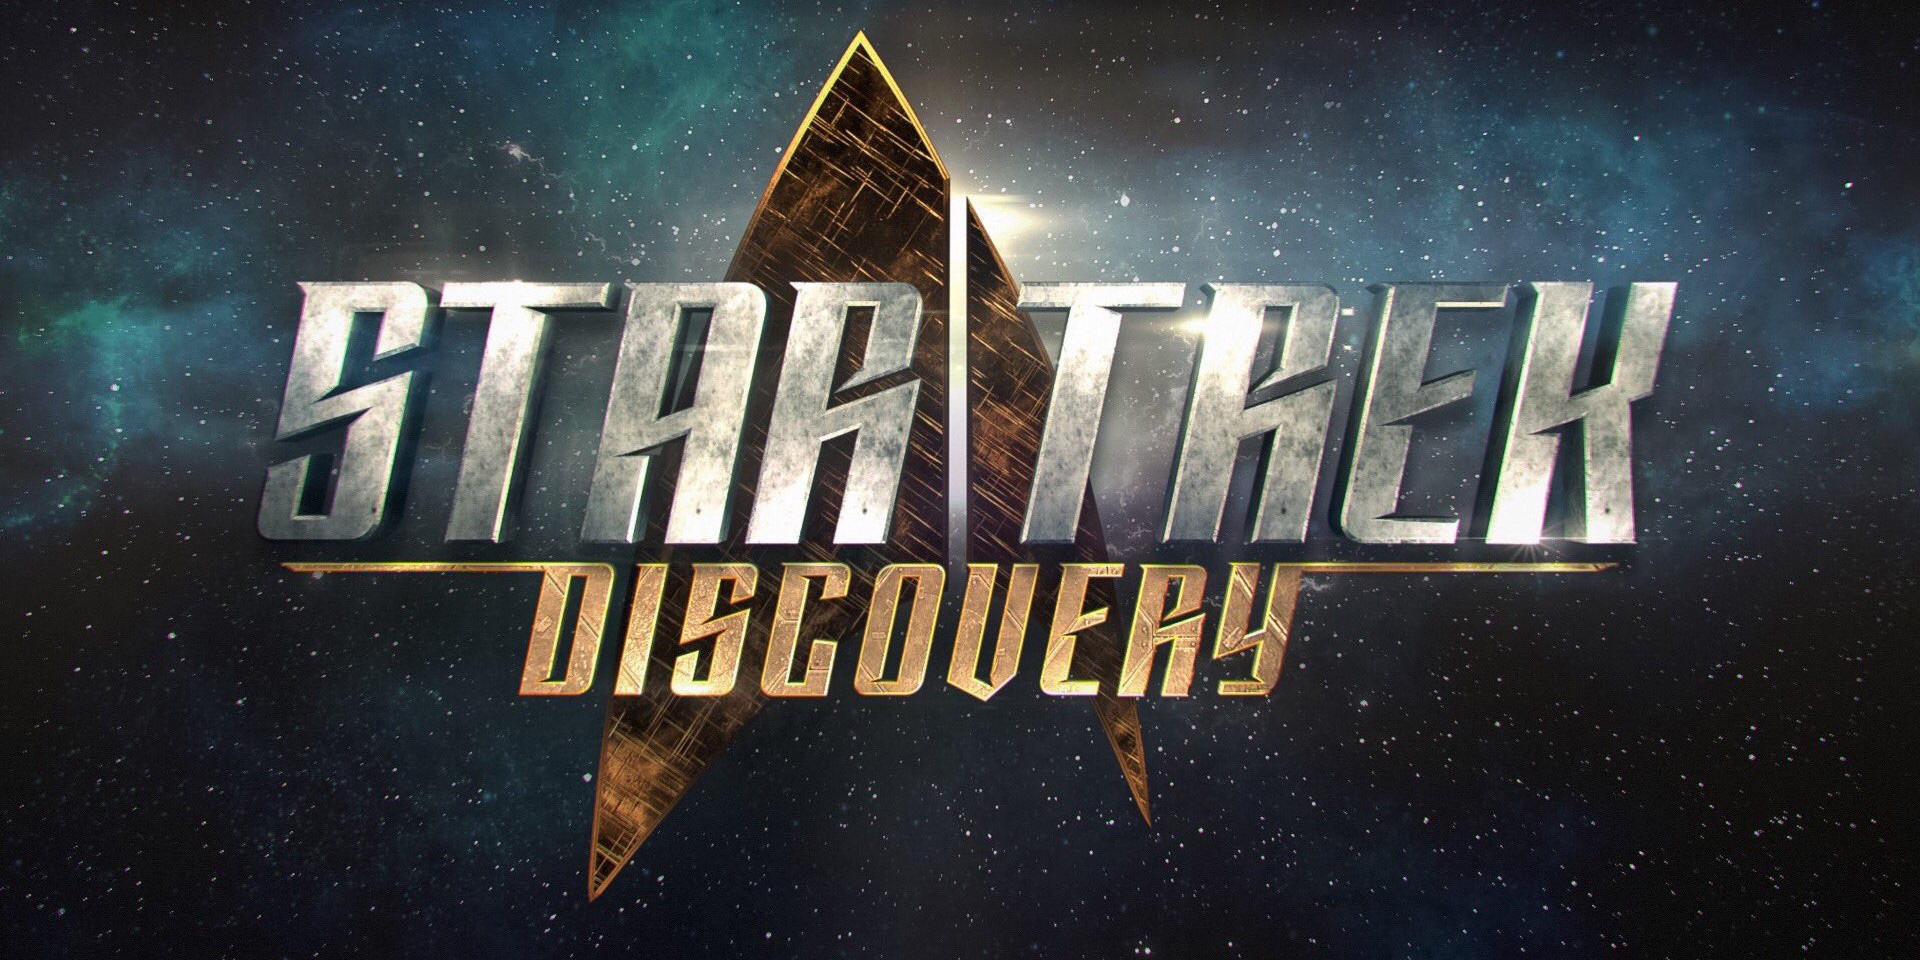 Star Trek Discovery: James T. Kirk Needs To Join The Crew